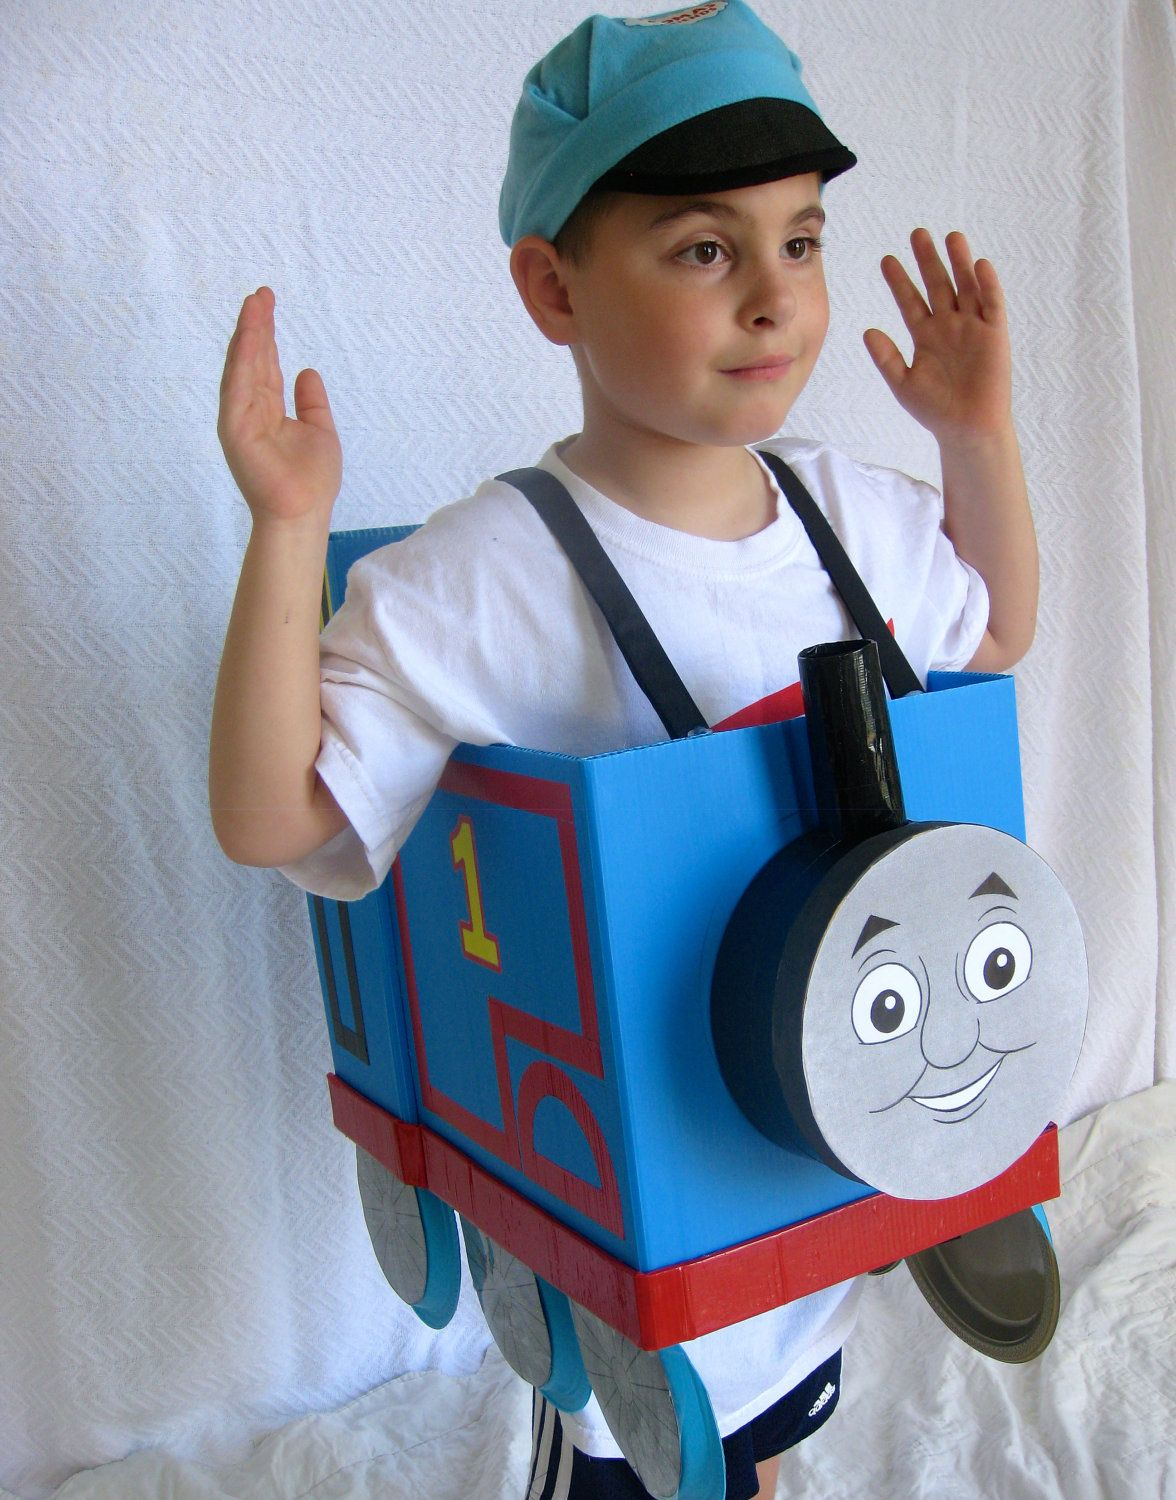 Thomas the Train costume idea. I can make with a card board box ribbon buttons paint.  sc 1 st  Pinterest & Toddler and kids Thomas the Train Costume | One night a year ...